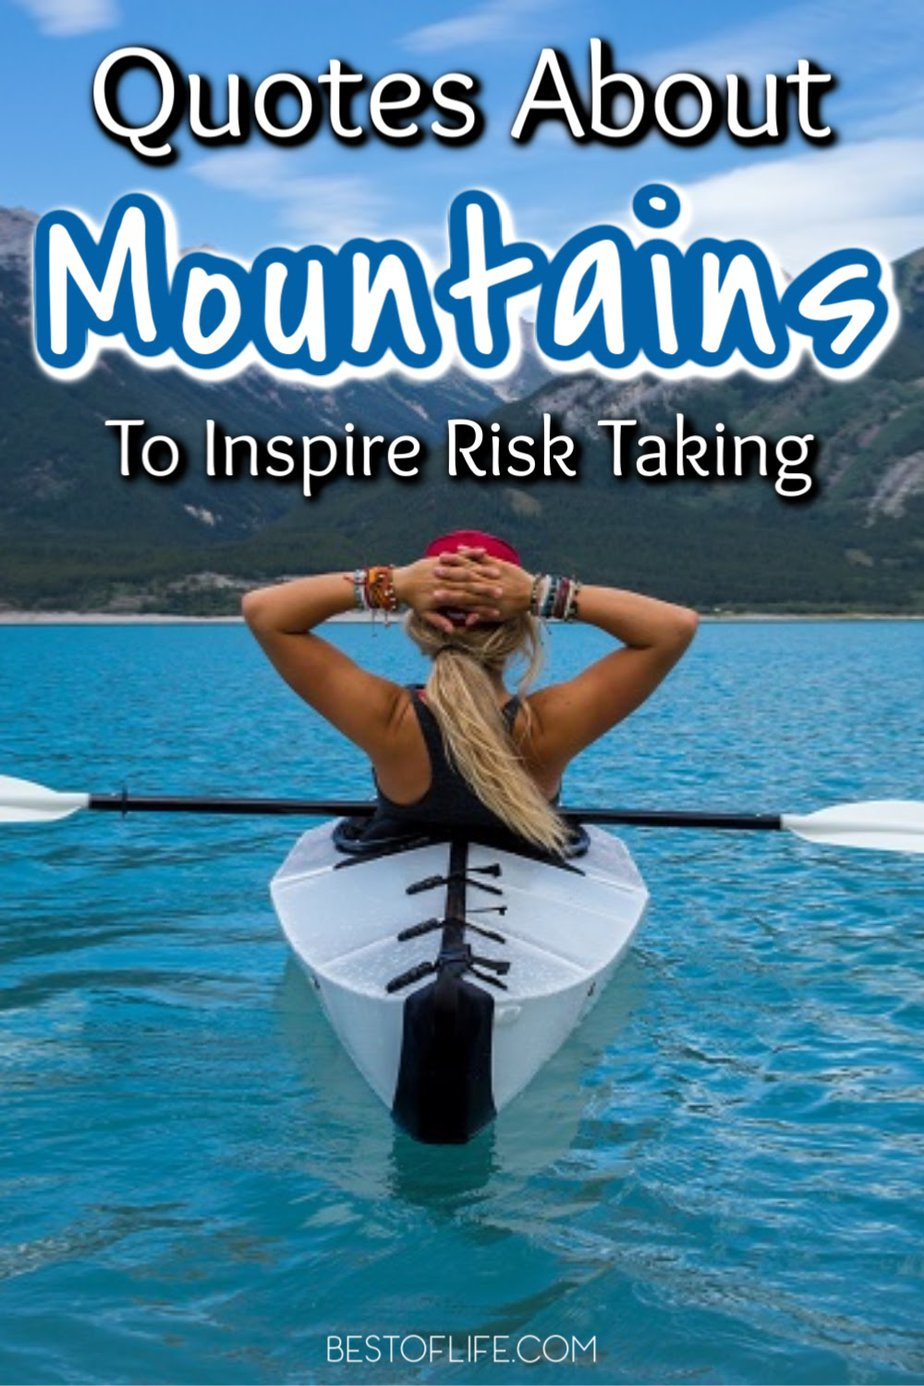 We all have figurative mountains to climb and we could use inspirational quotes about mountains to help us gain the strength to take the risk. Quotes to Inspire | Quotes About Risk and Love | No Regrets Quotes Inspirational | Risk Taking Comfort Zone Quotes | Taking Risks with Love Quotes #quotes #inspirational